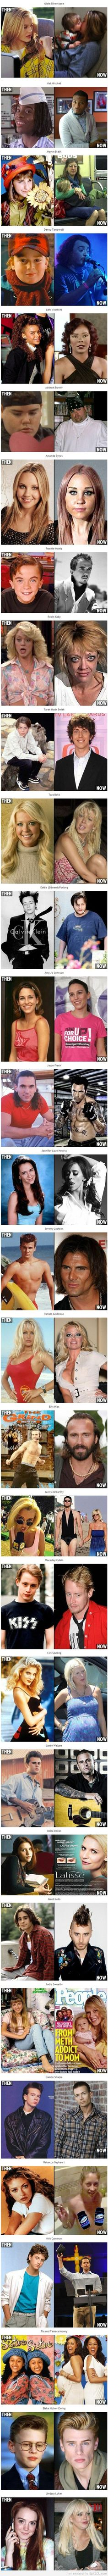 Celebrities THEN vs NOW | Epic LOL - some of these are just... wow.